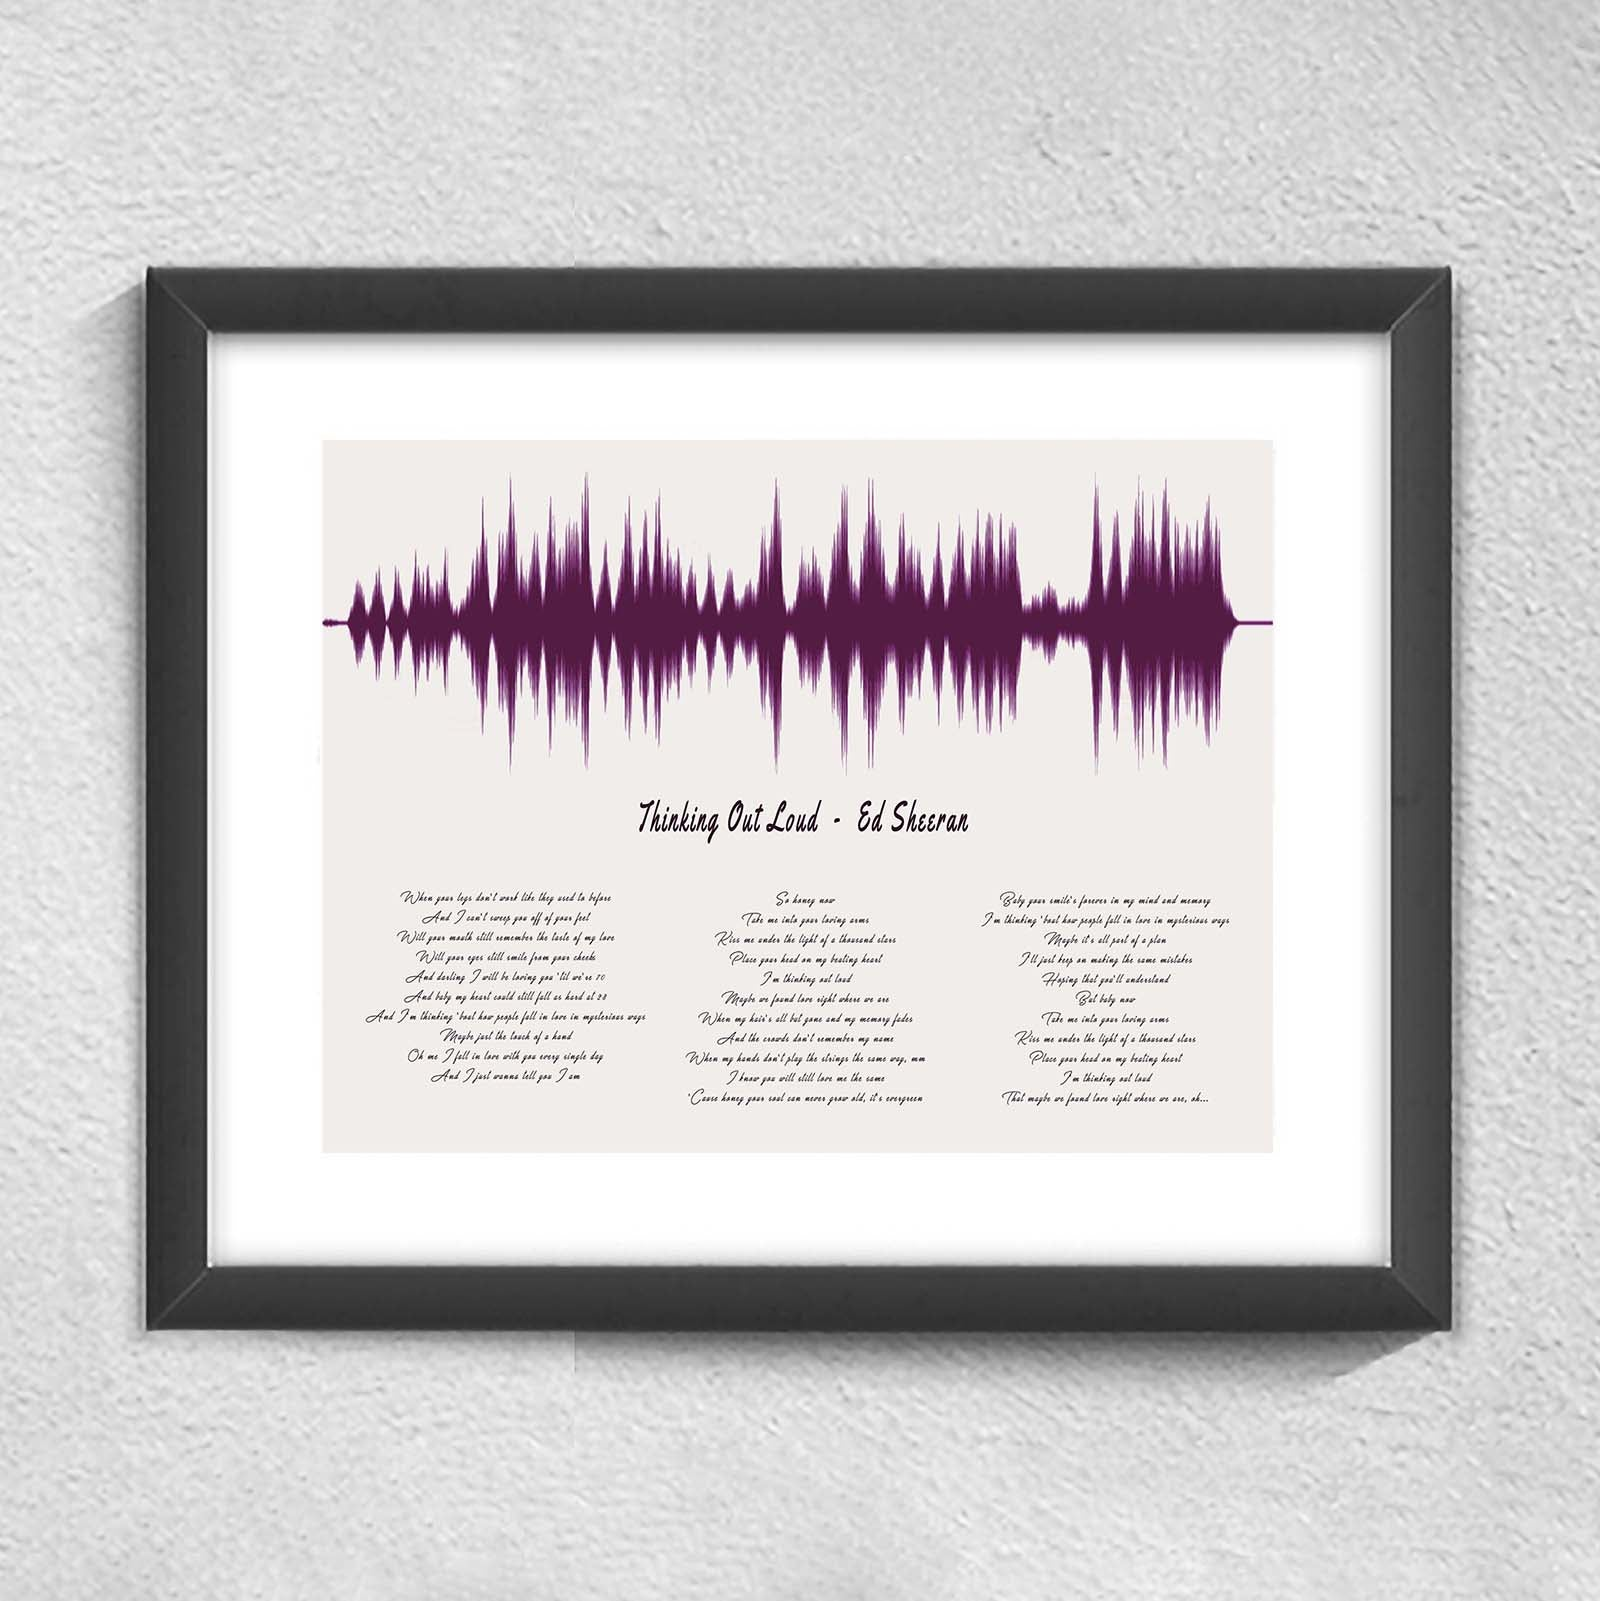 1st Anniversary Gift Wedding Song Sound Wave Lyrics First Dance Sound Wave